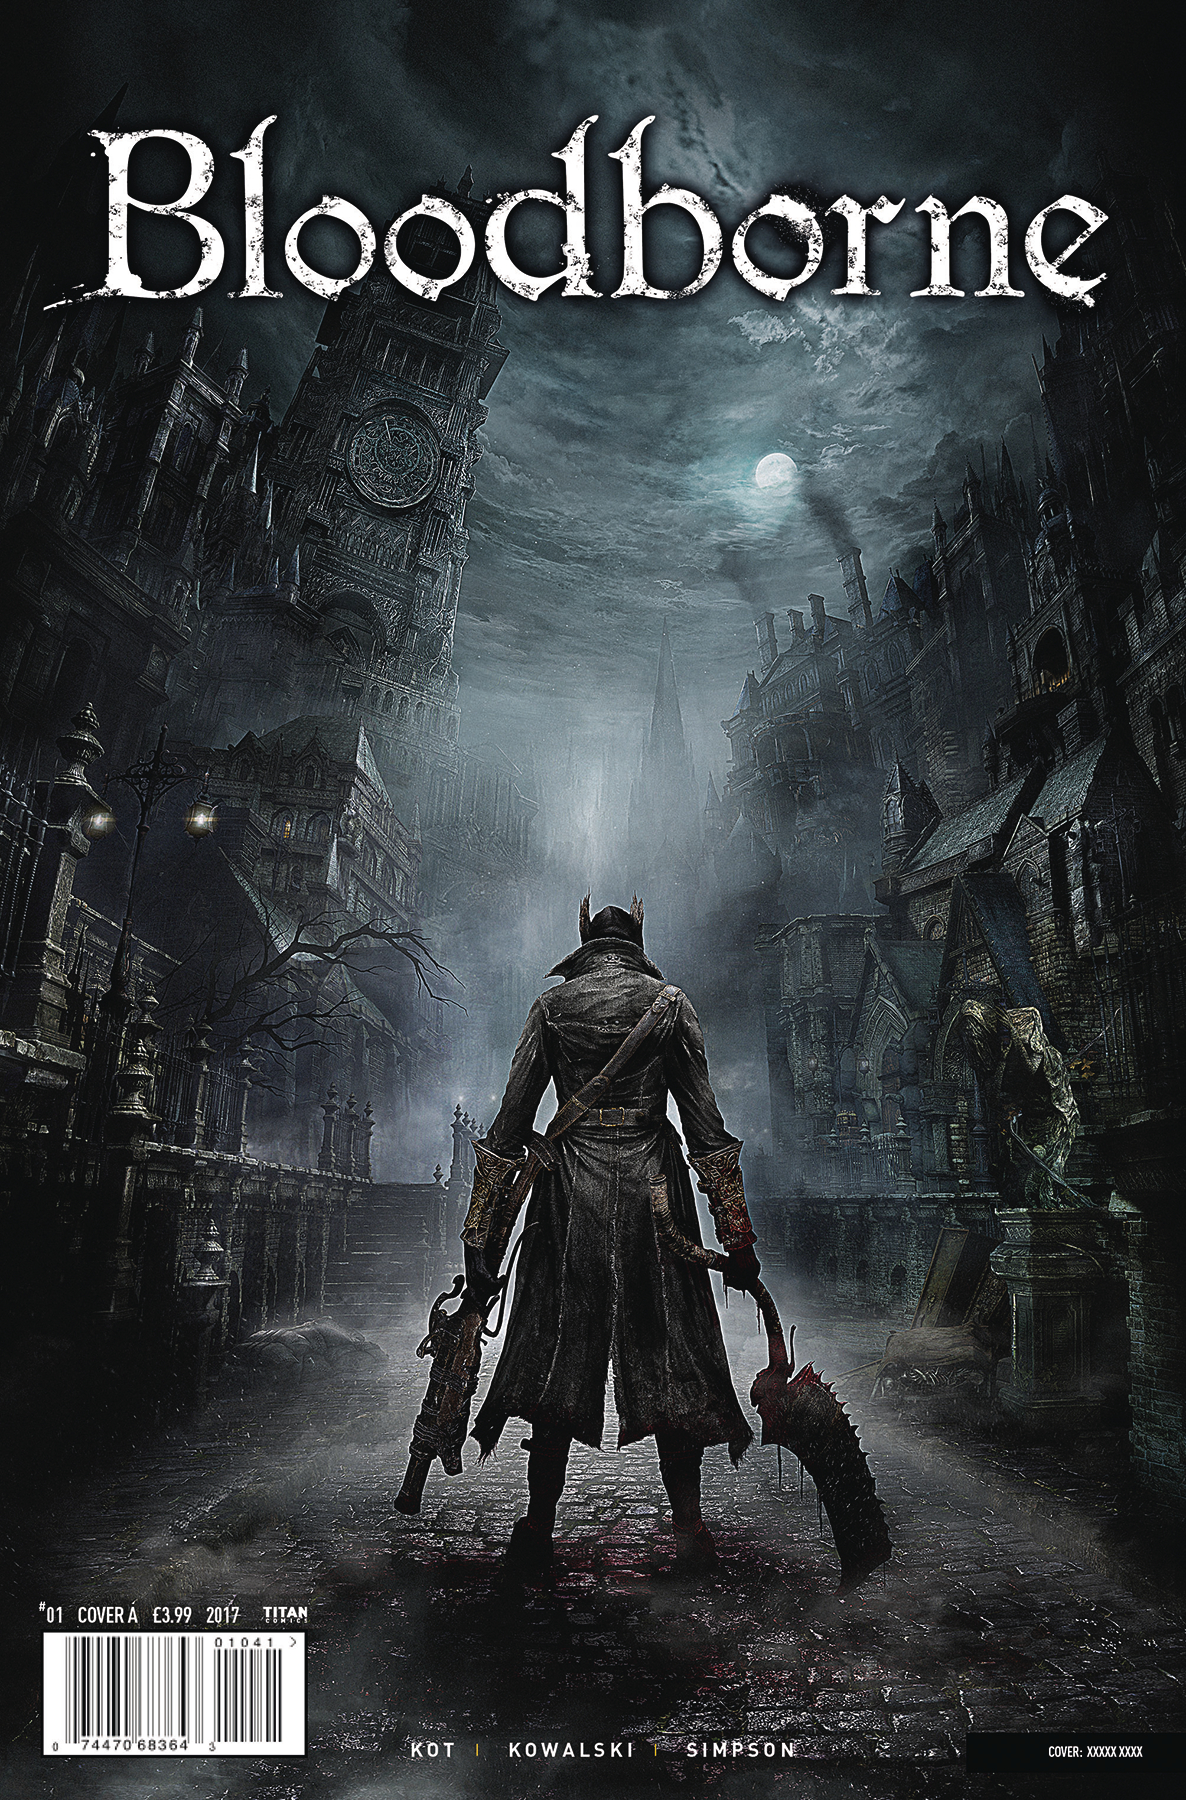 BLOODBORNE #1 (OF 4) CVR B GAME VAR (MR)